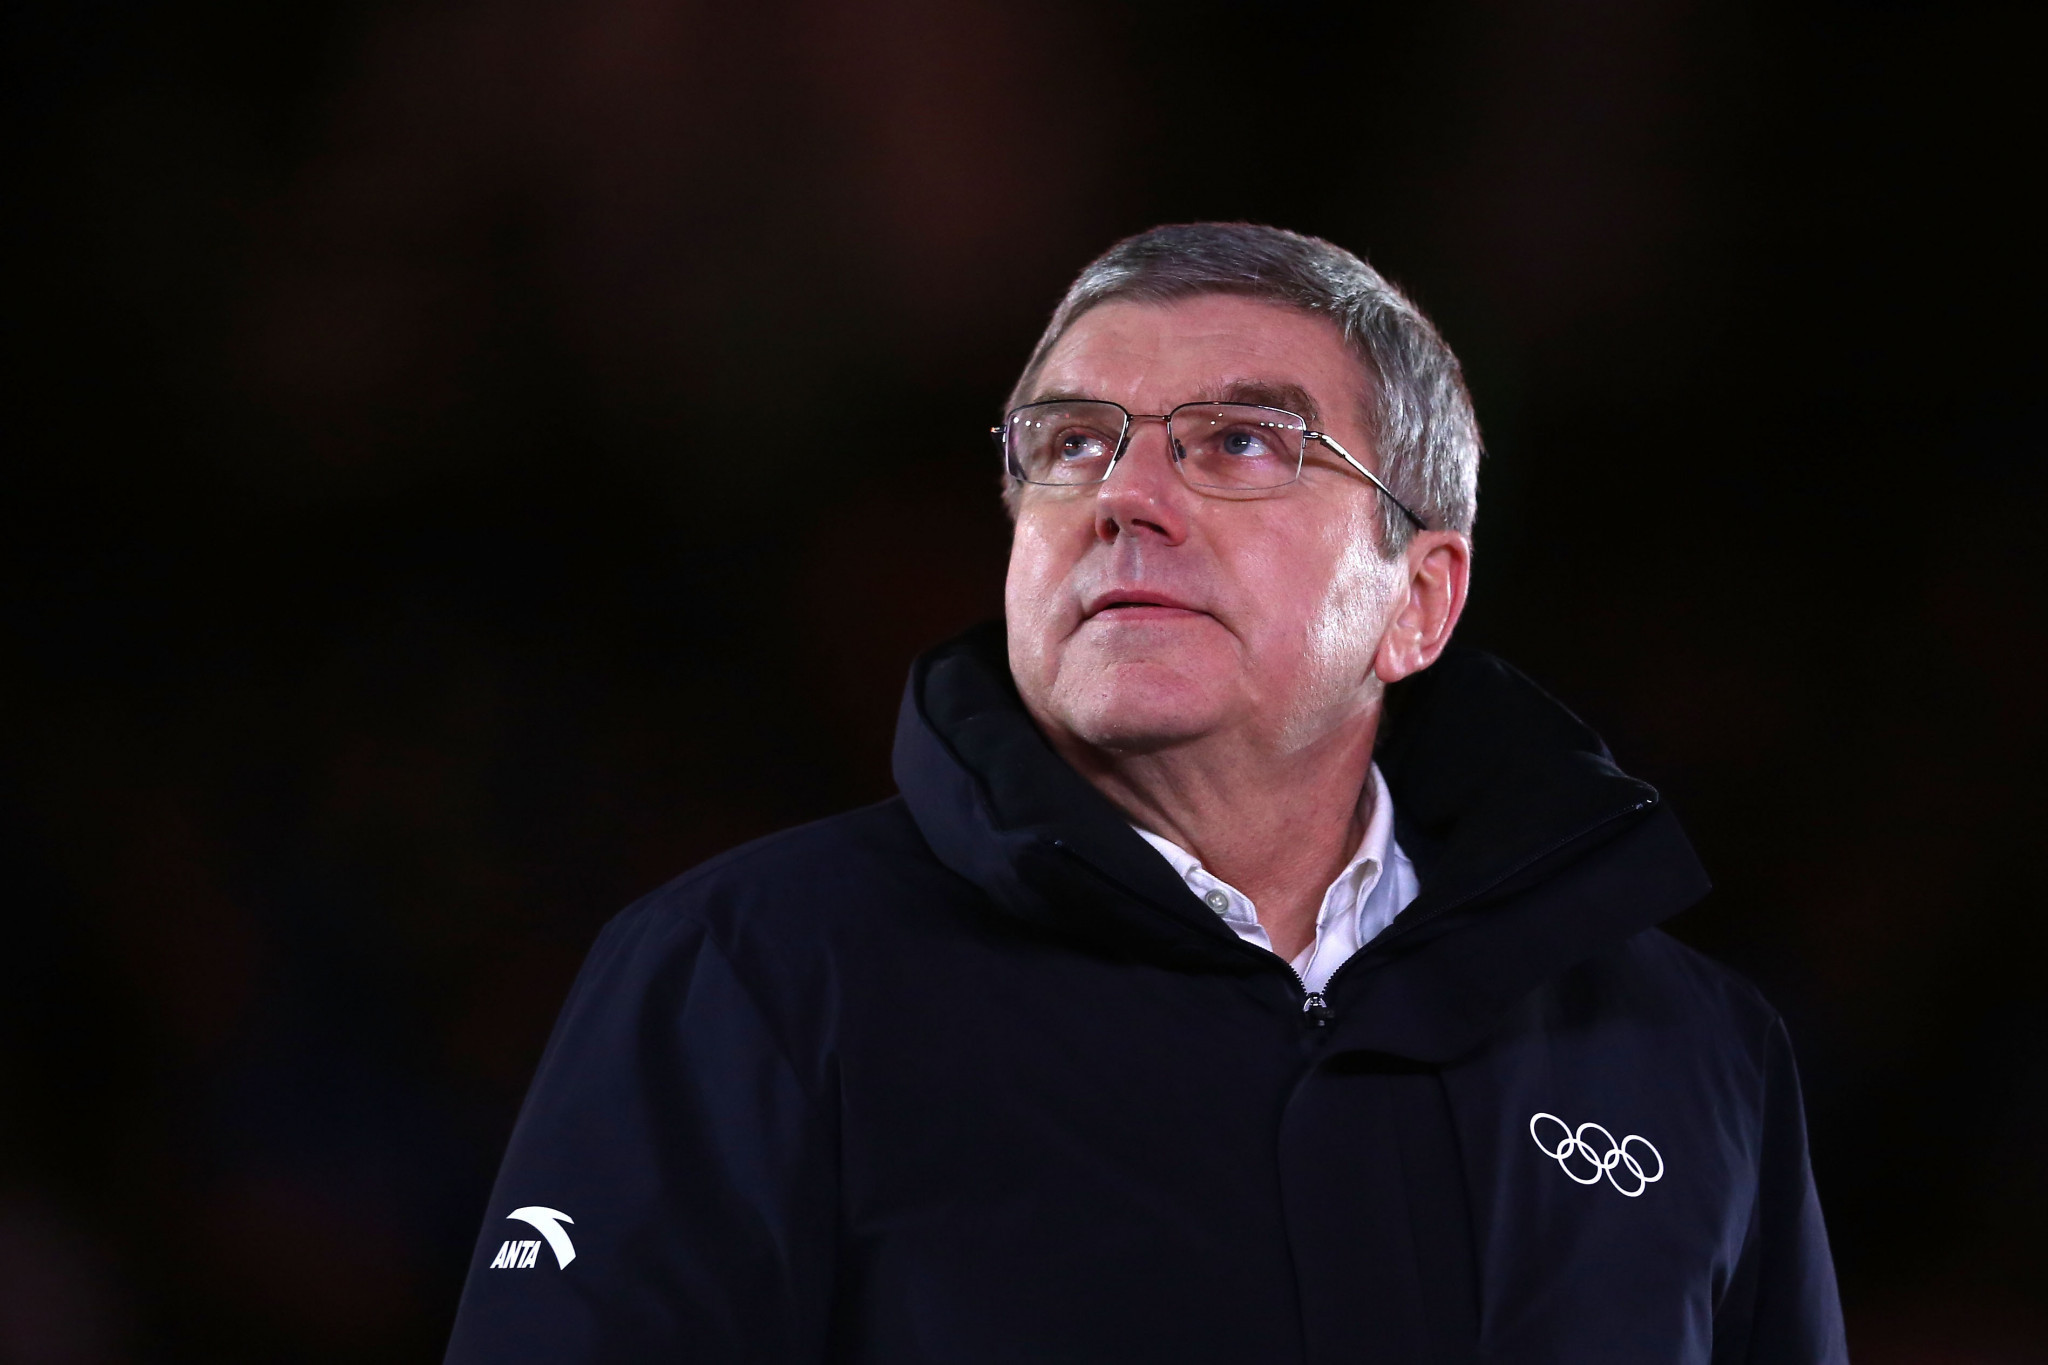 Thomas Bach has been invited to the Games of the Small States of Europe ©Getty Images